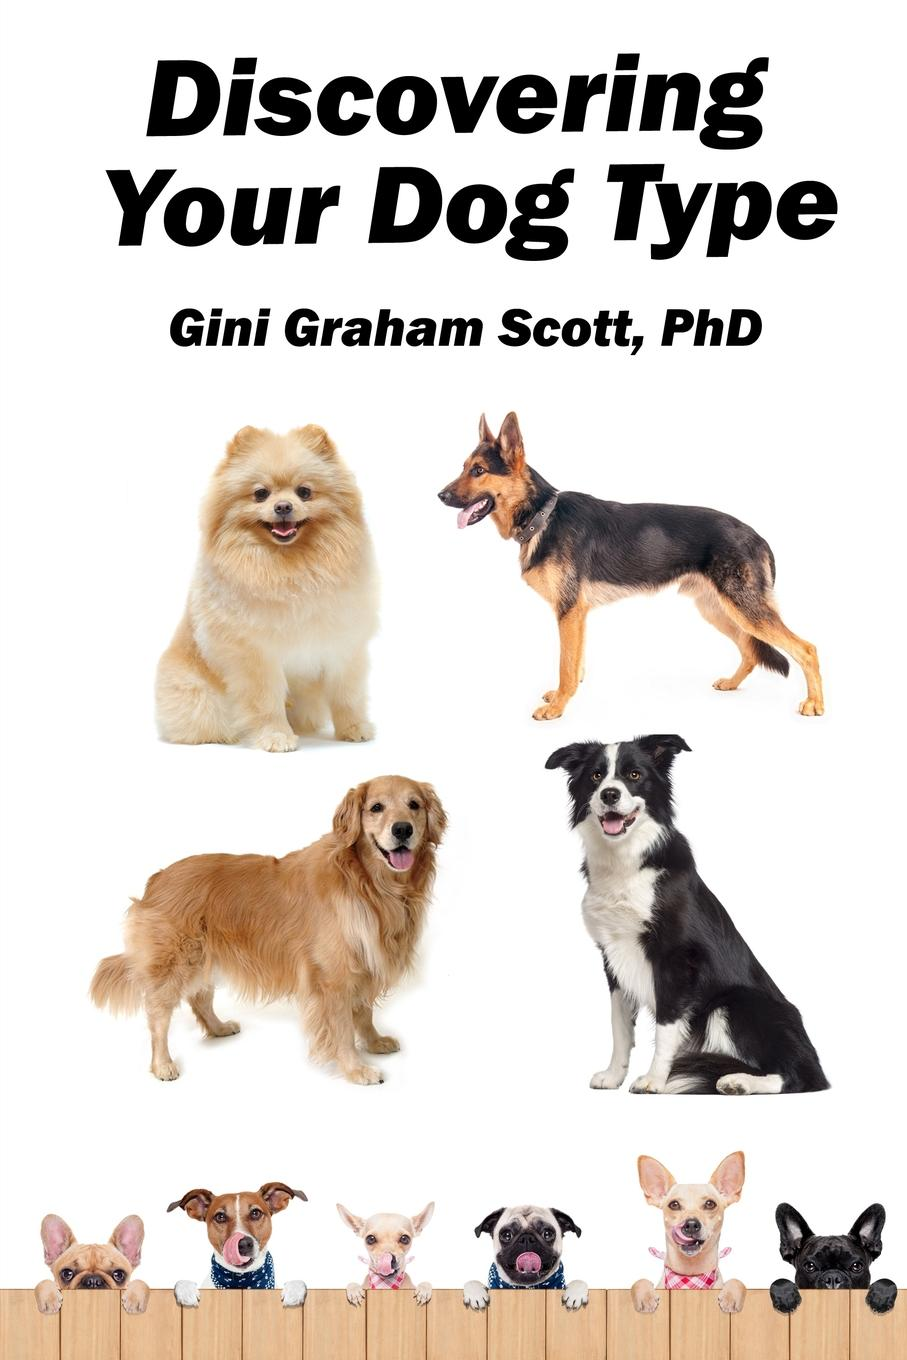 Gini Graham Scott Discovering Your Dog Type. A New System for Understanding Yourself and Others, Improving Your Relationships, and Getting What You Want in Life louis janda the psychologist s book of personality tests 24 revealing tests to identify and overcome your personal barriers to a better life